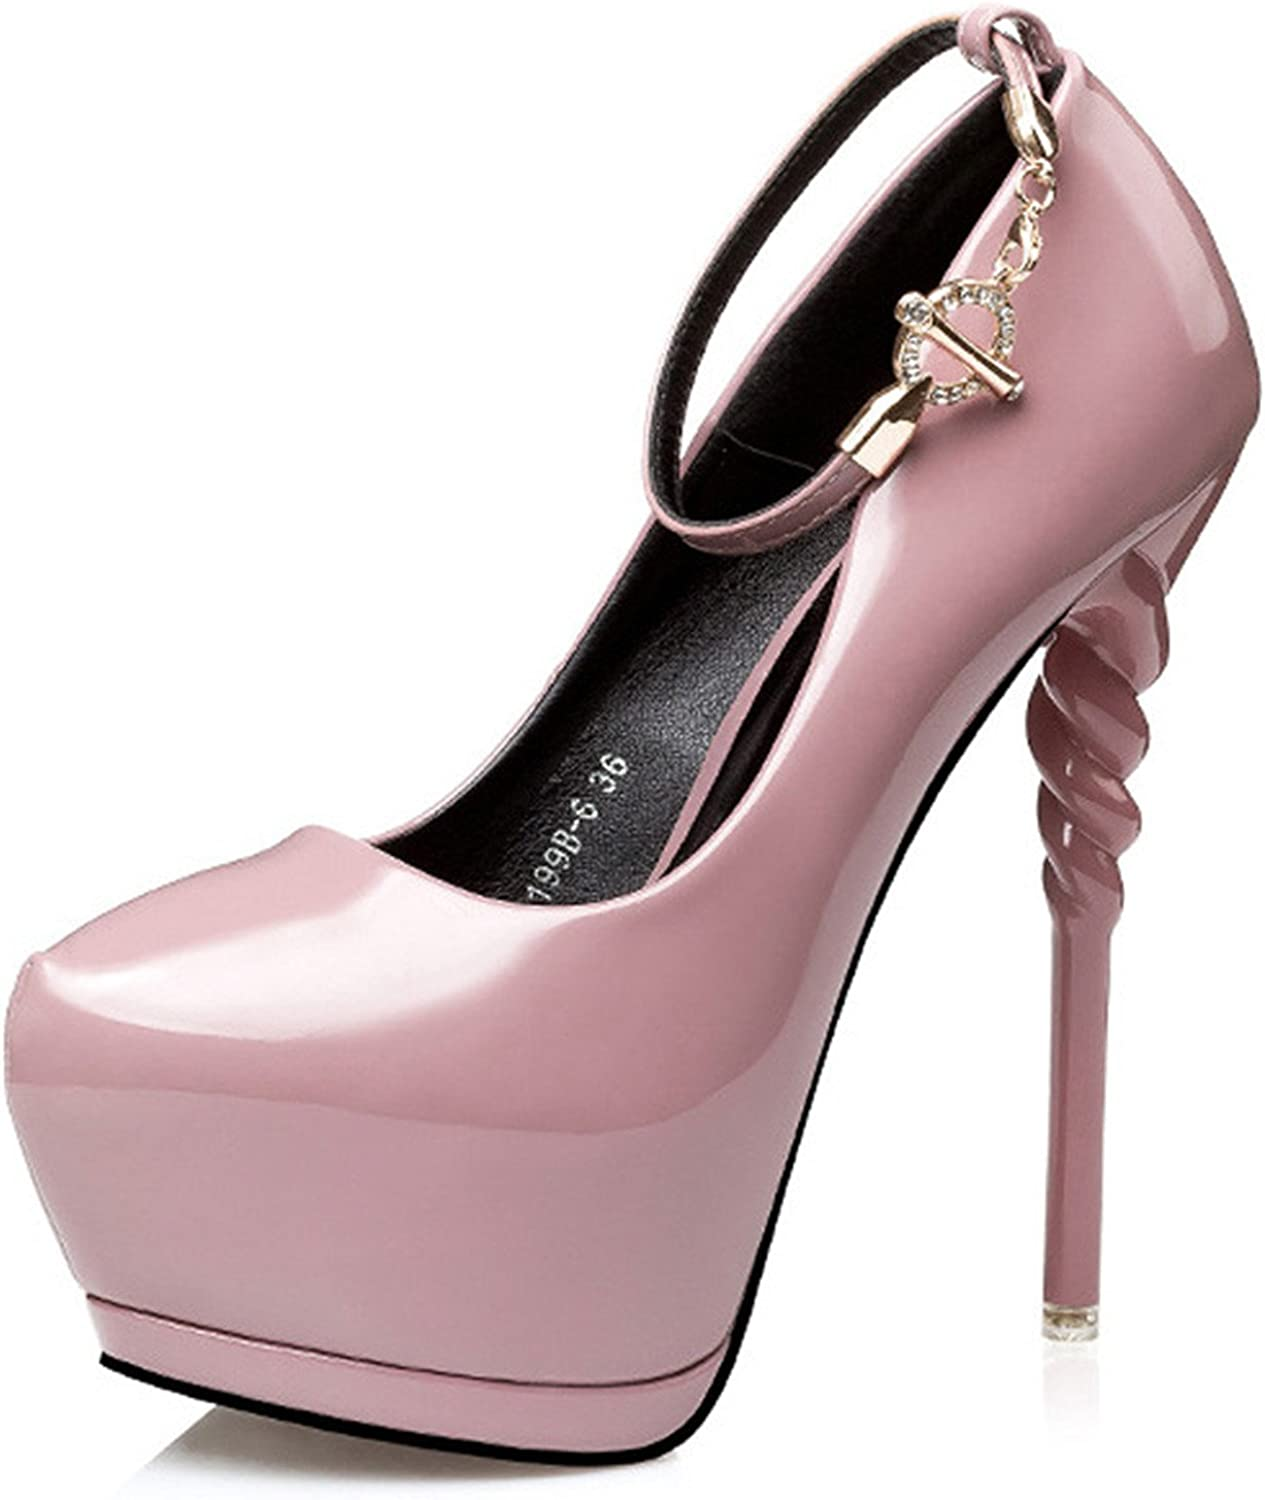 Daniig High Heeled Platform shoes for Women 2017 Patent Leather Party Fashion Pointed Toe Buckle Strap Dance High Heel shoes